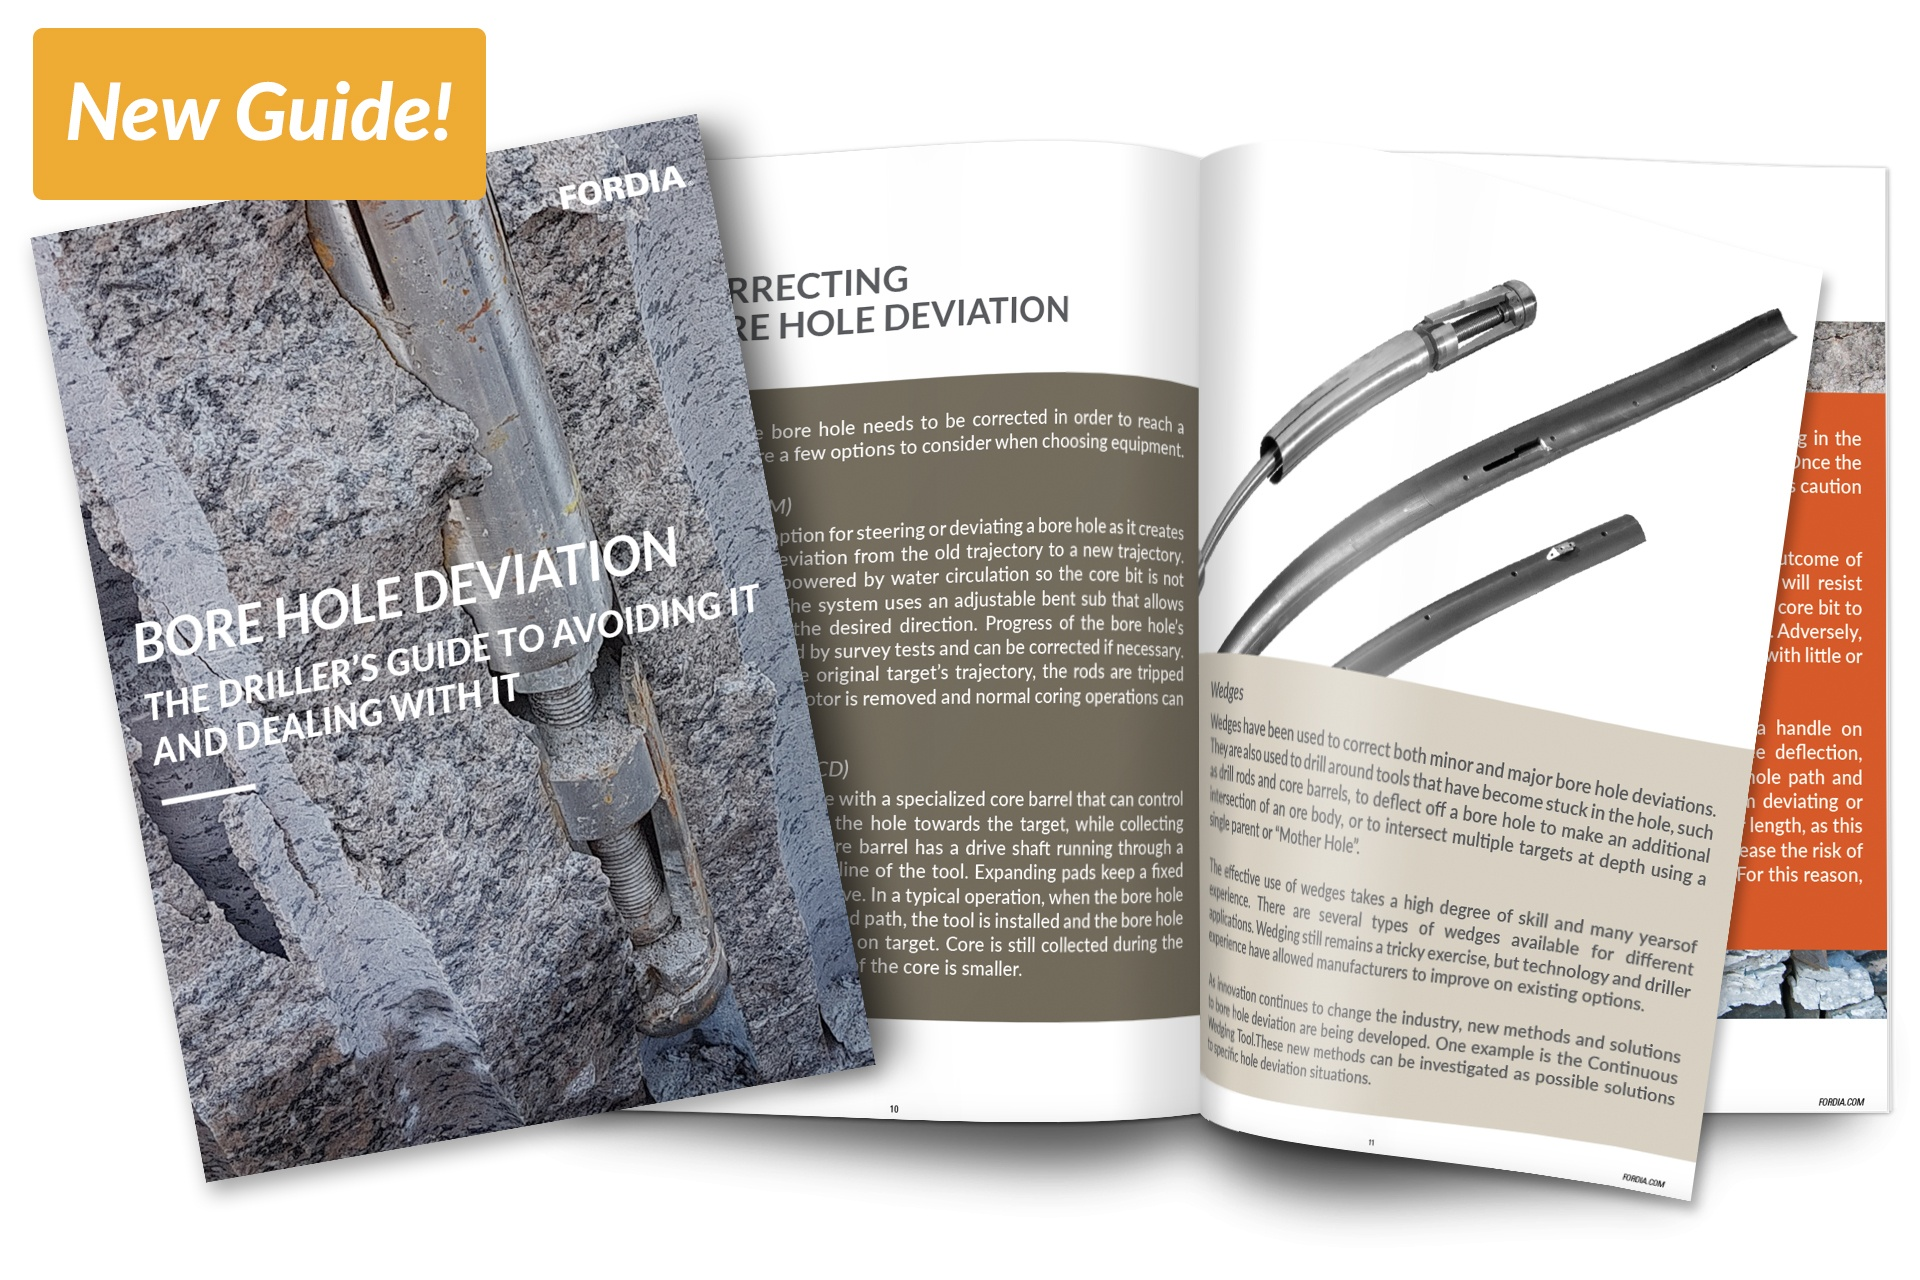 A New Guide for Diamond Drillers on Bore Hole Deviation